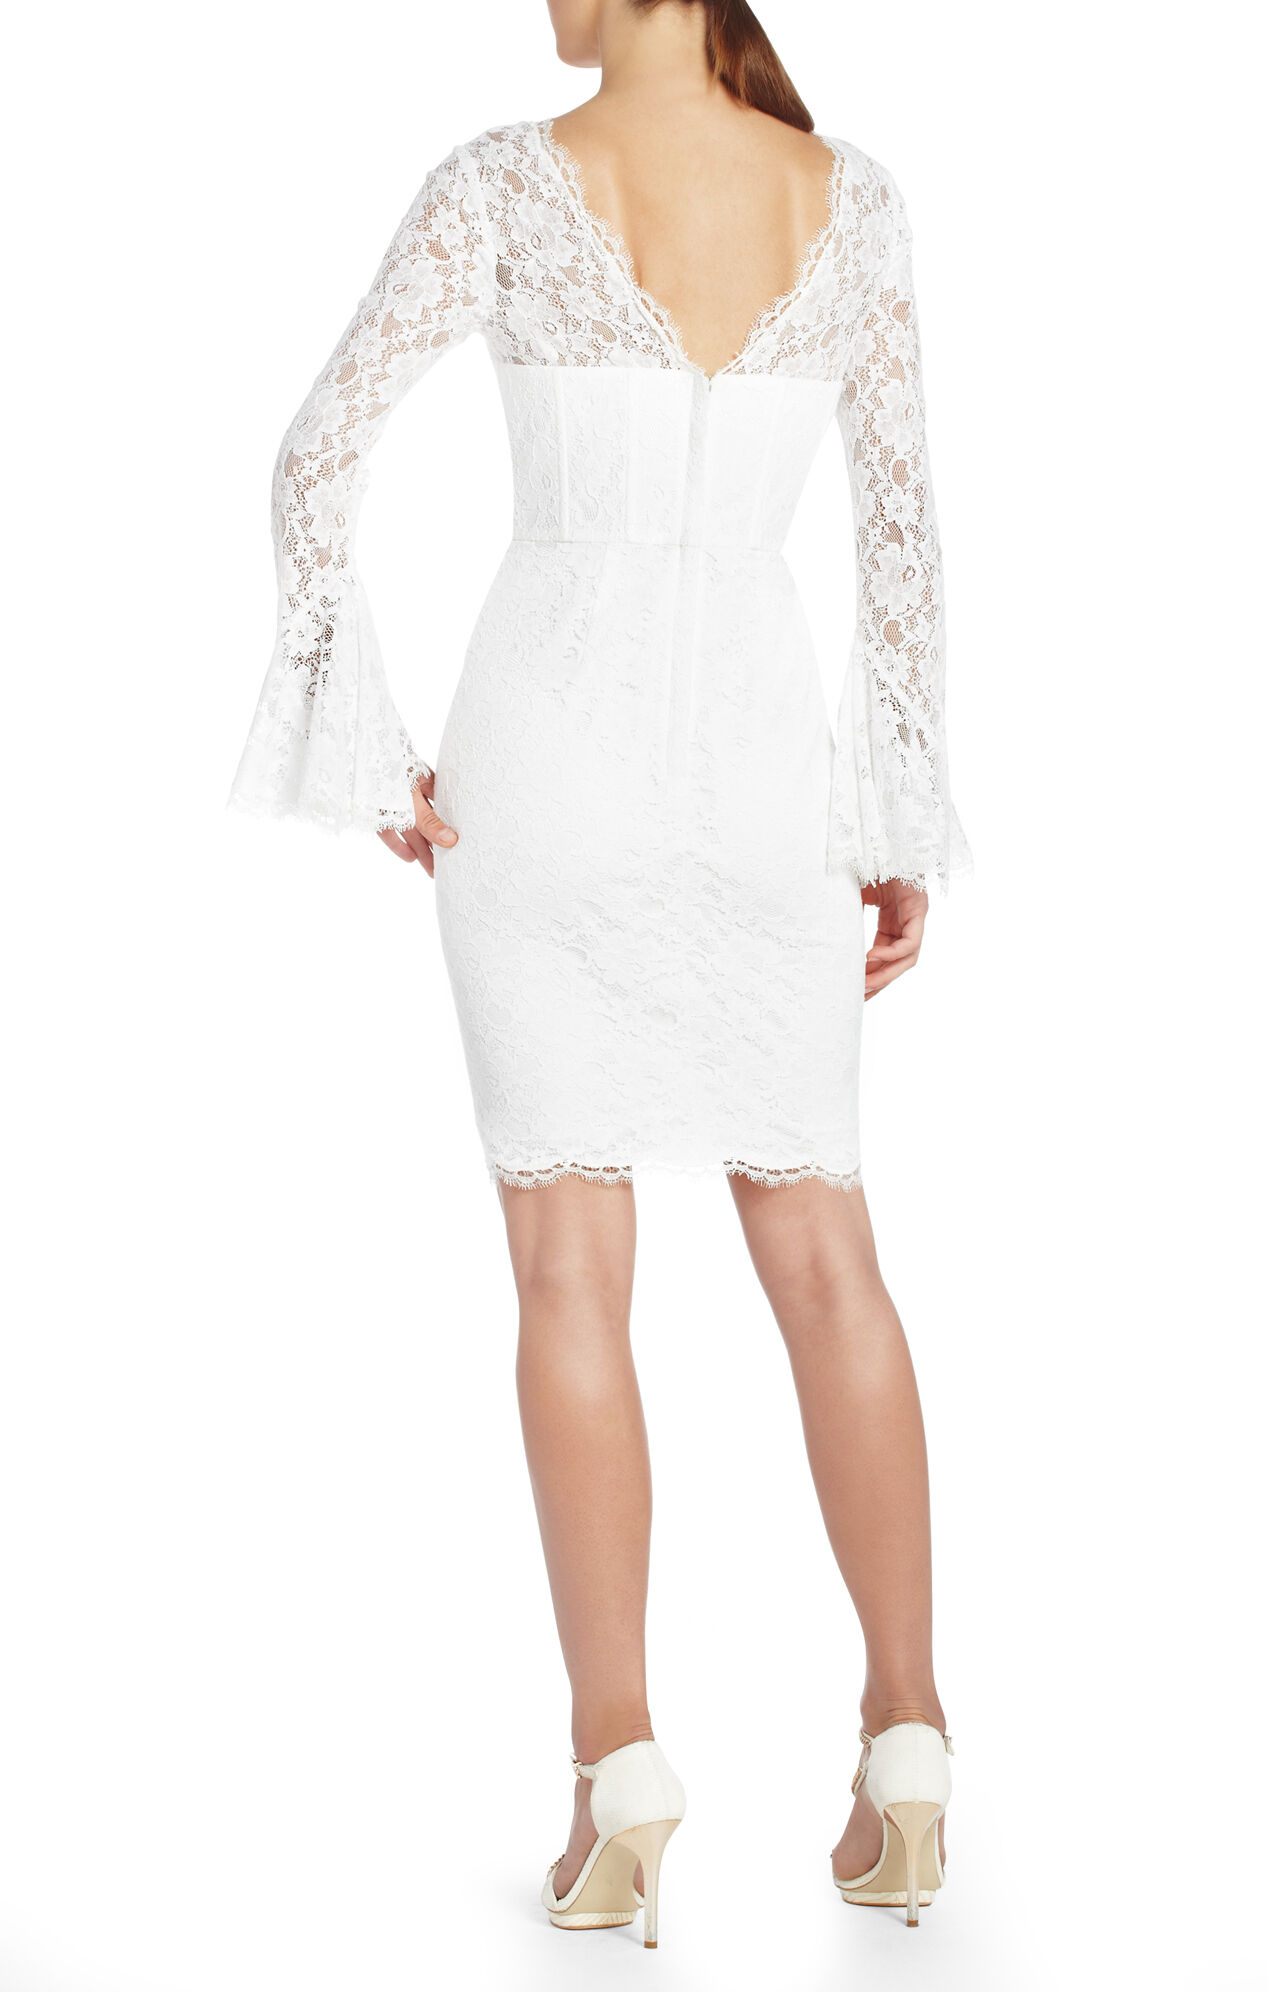 Salina Lace Corset Cocktail Dress